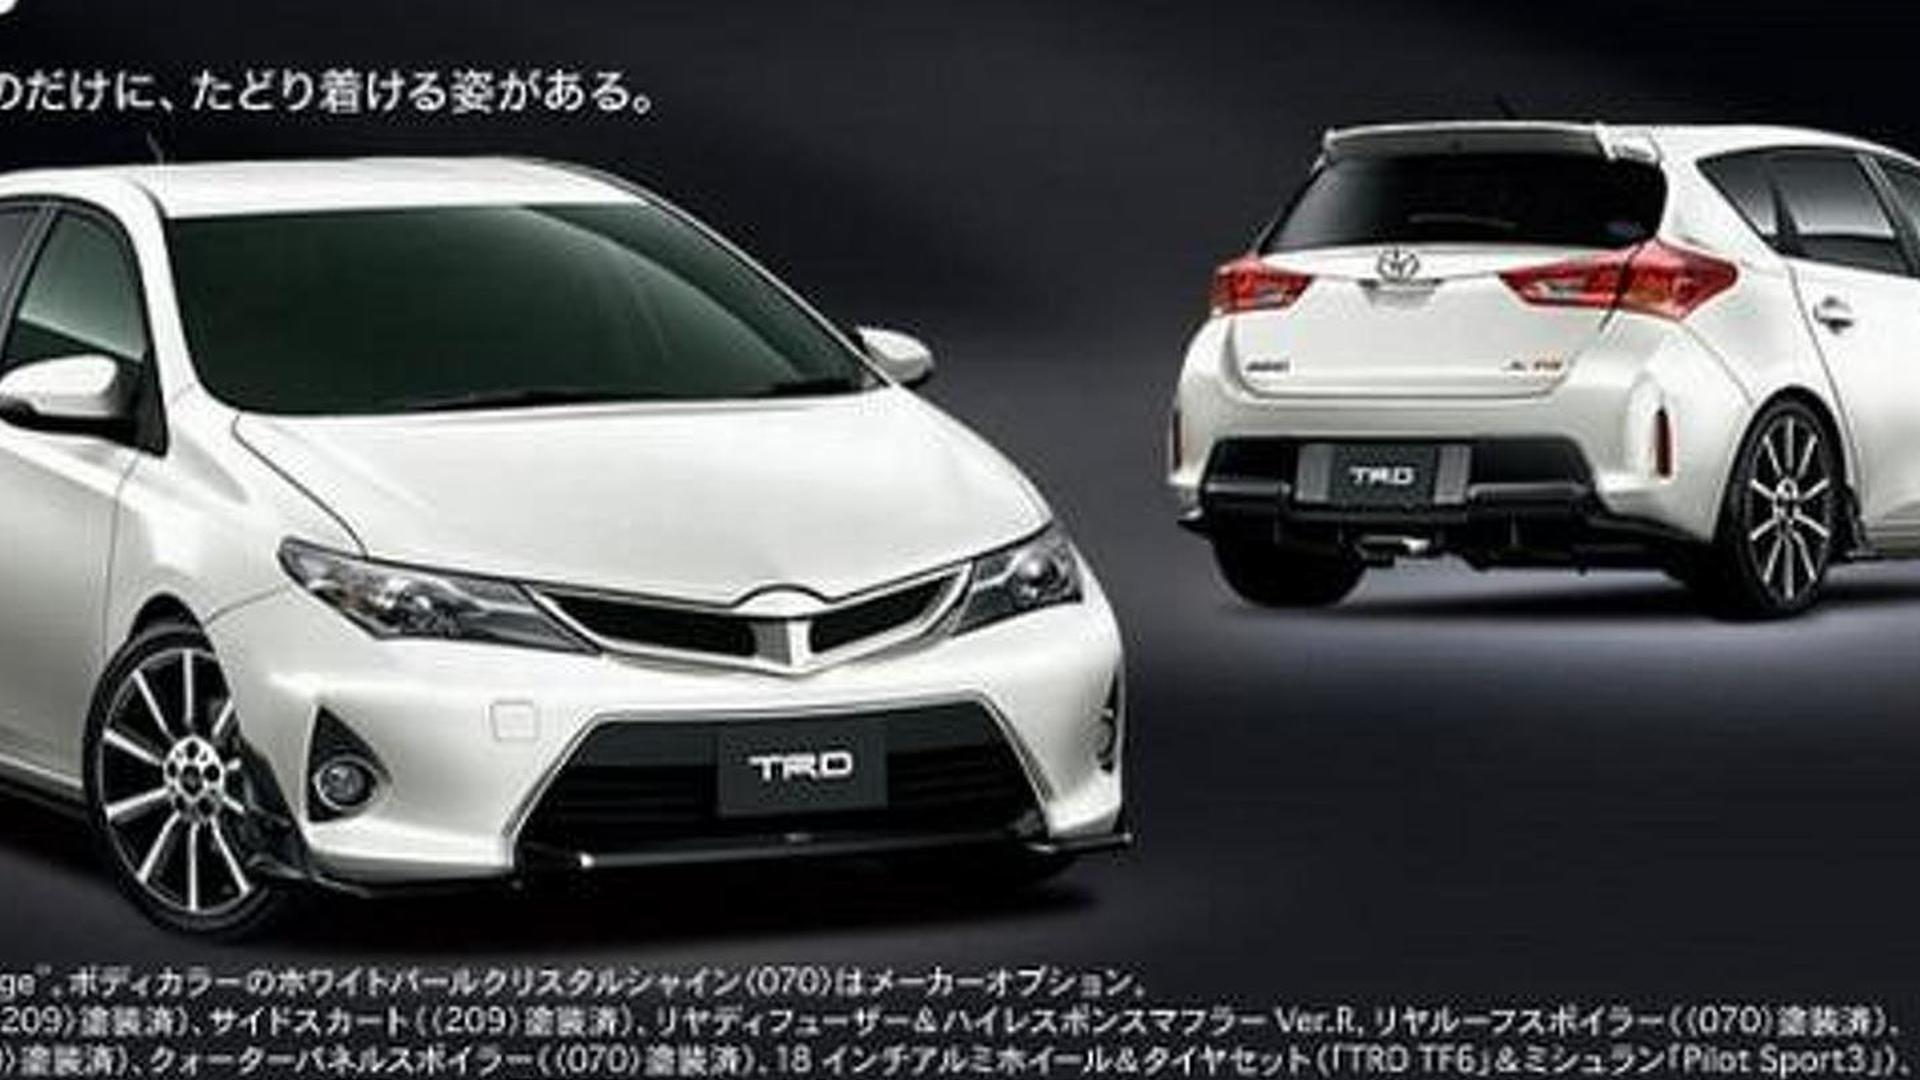 Toyota Auris due for the hot hatch treatment?